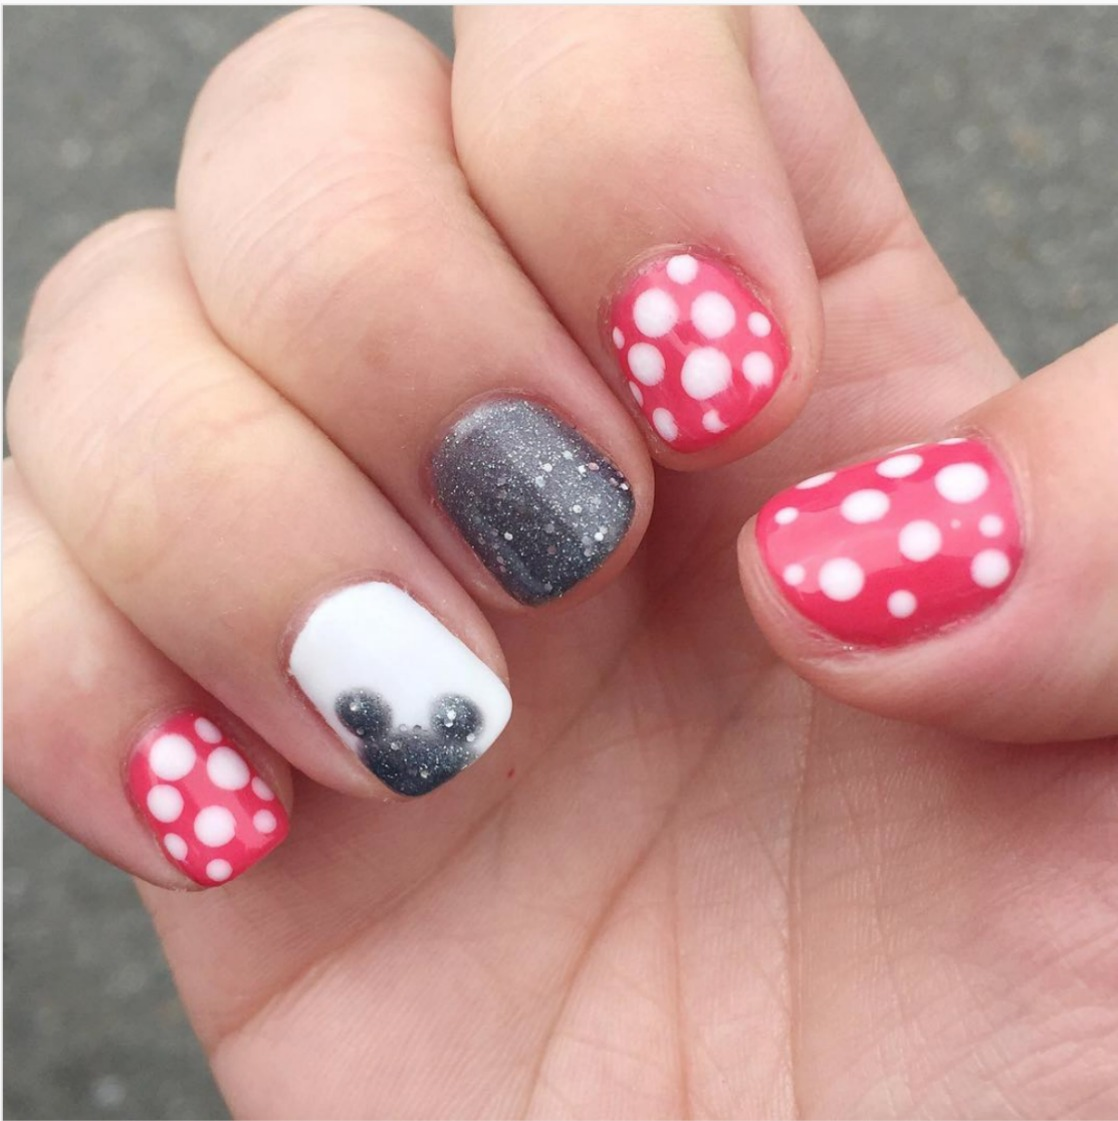 Magical Disney Nail Design Ideas | Walt Disney World | TravelingMom